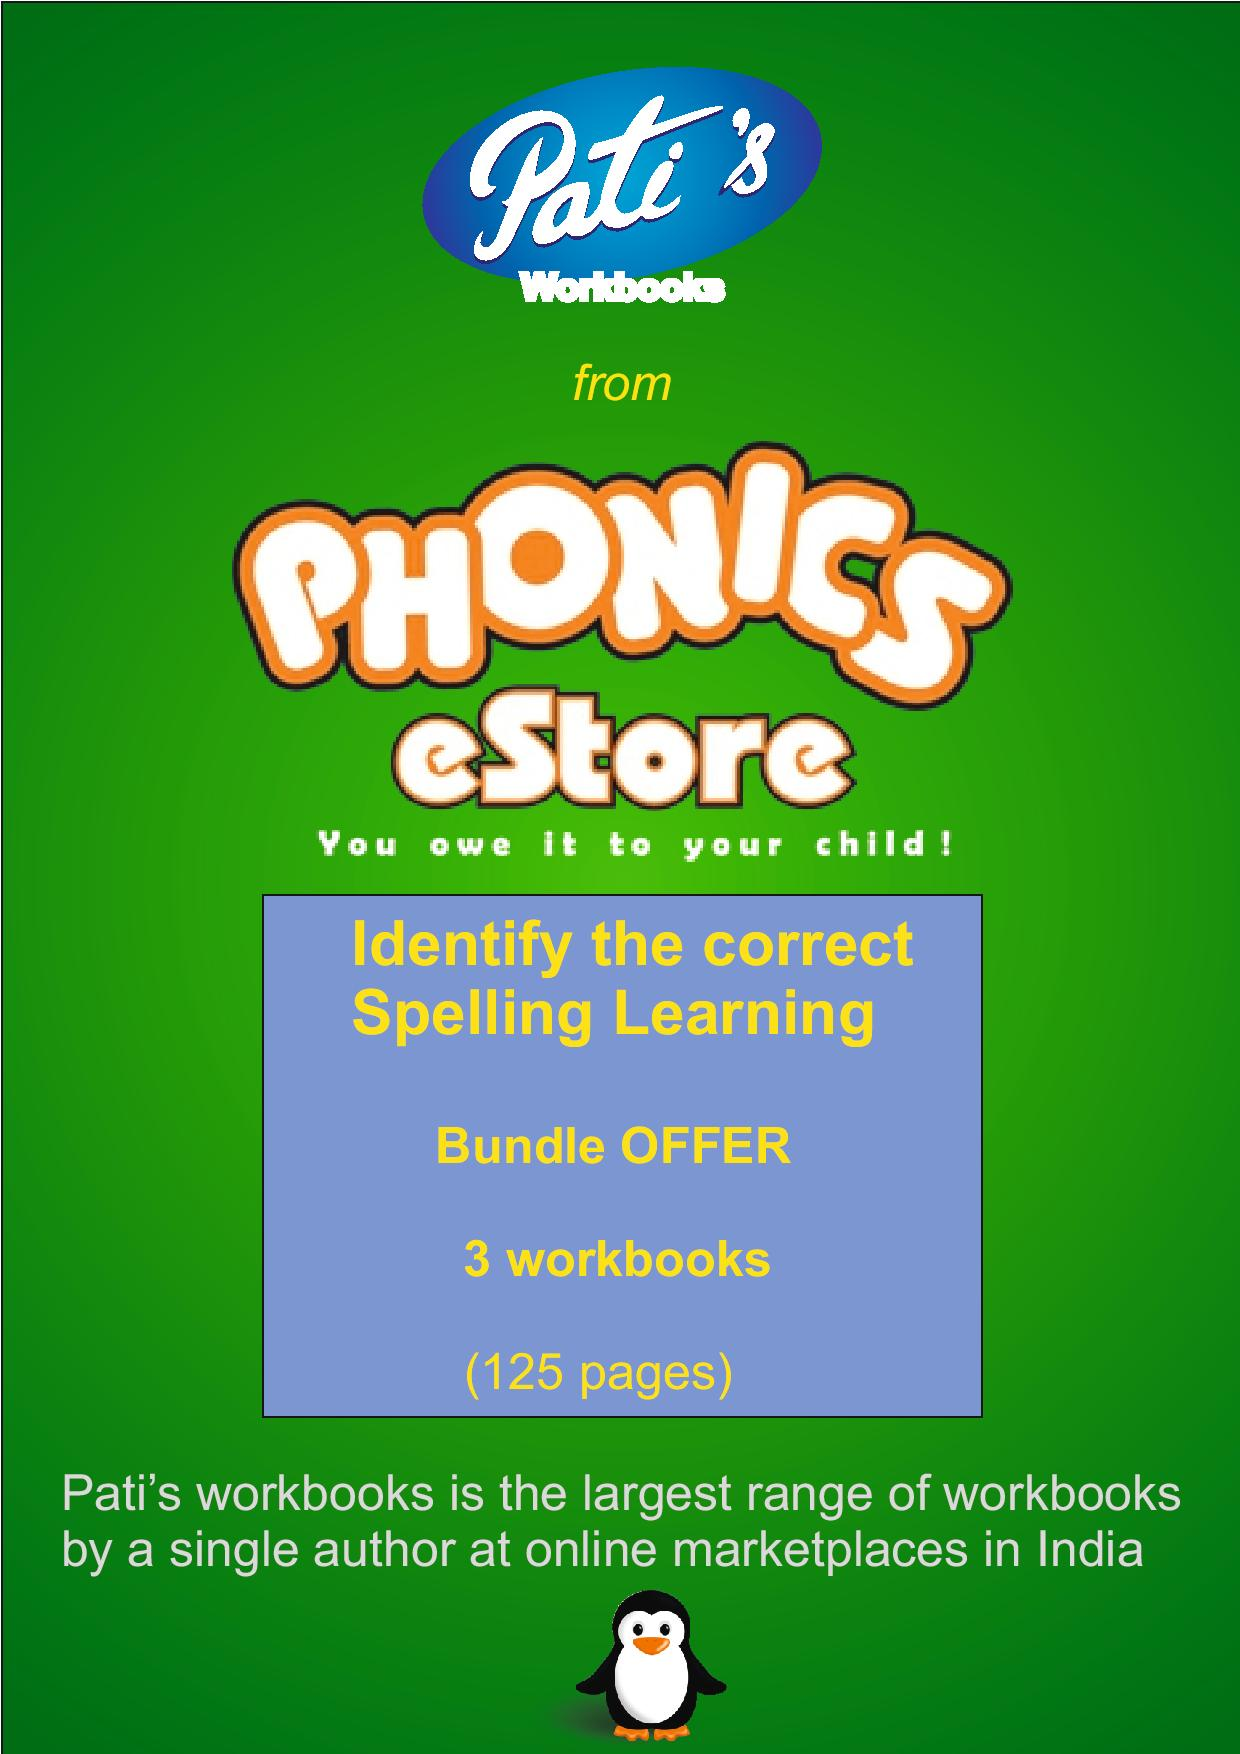 phonics classes in worli tardeo kemps corner